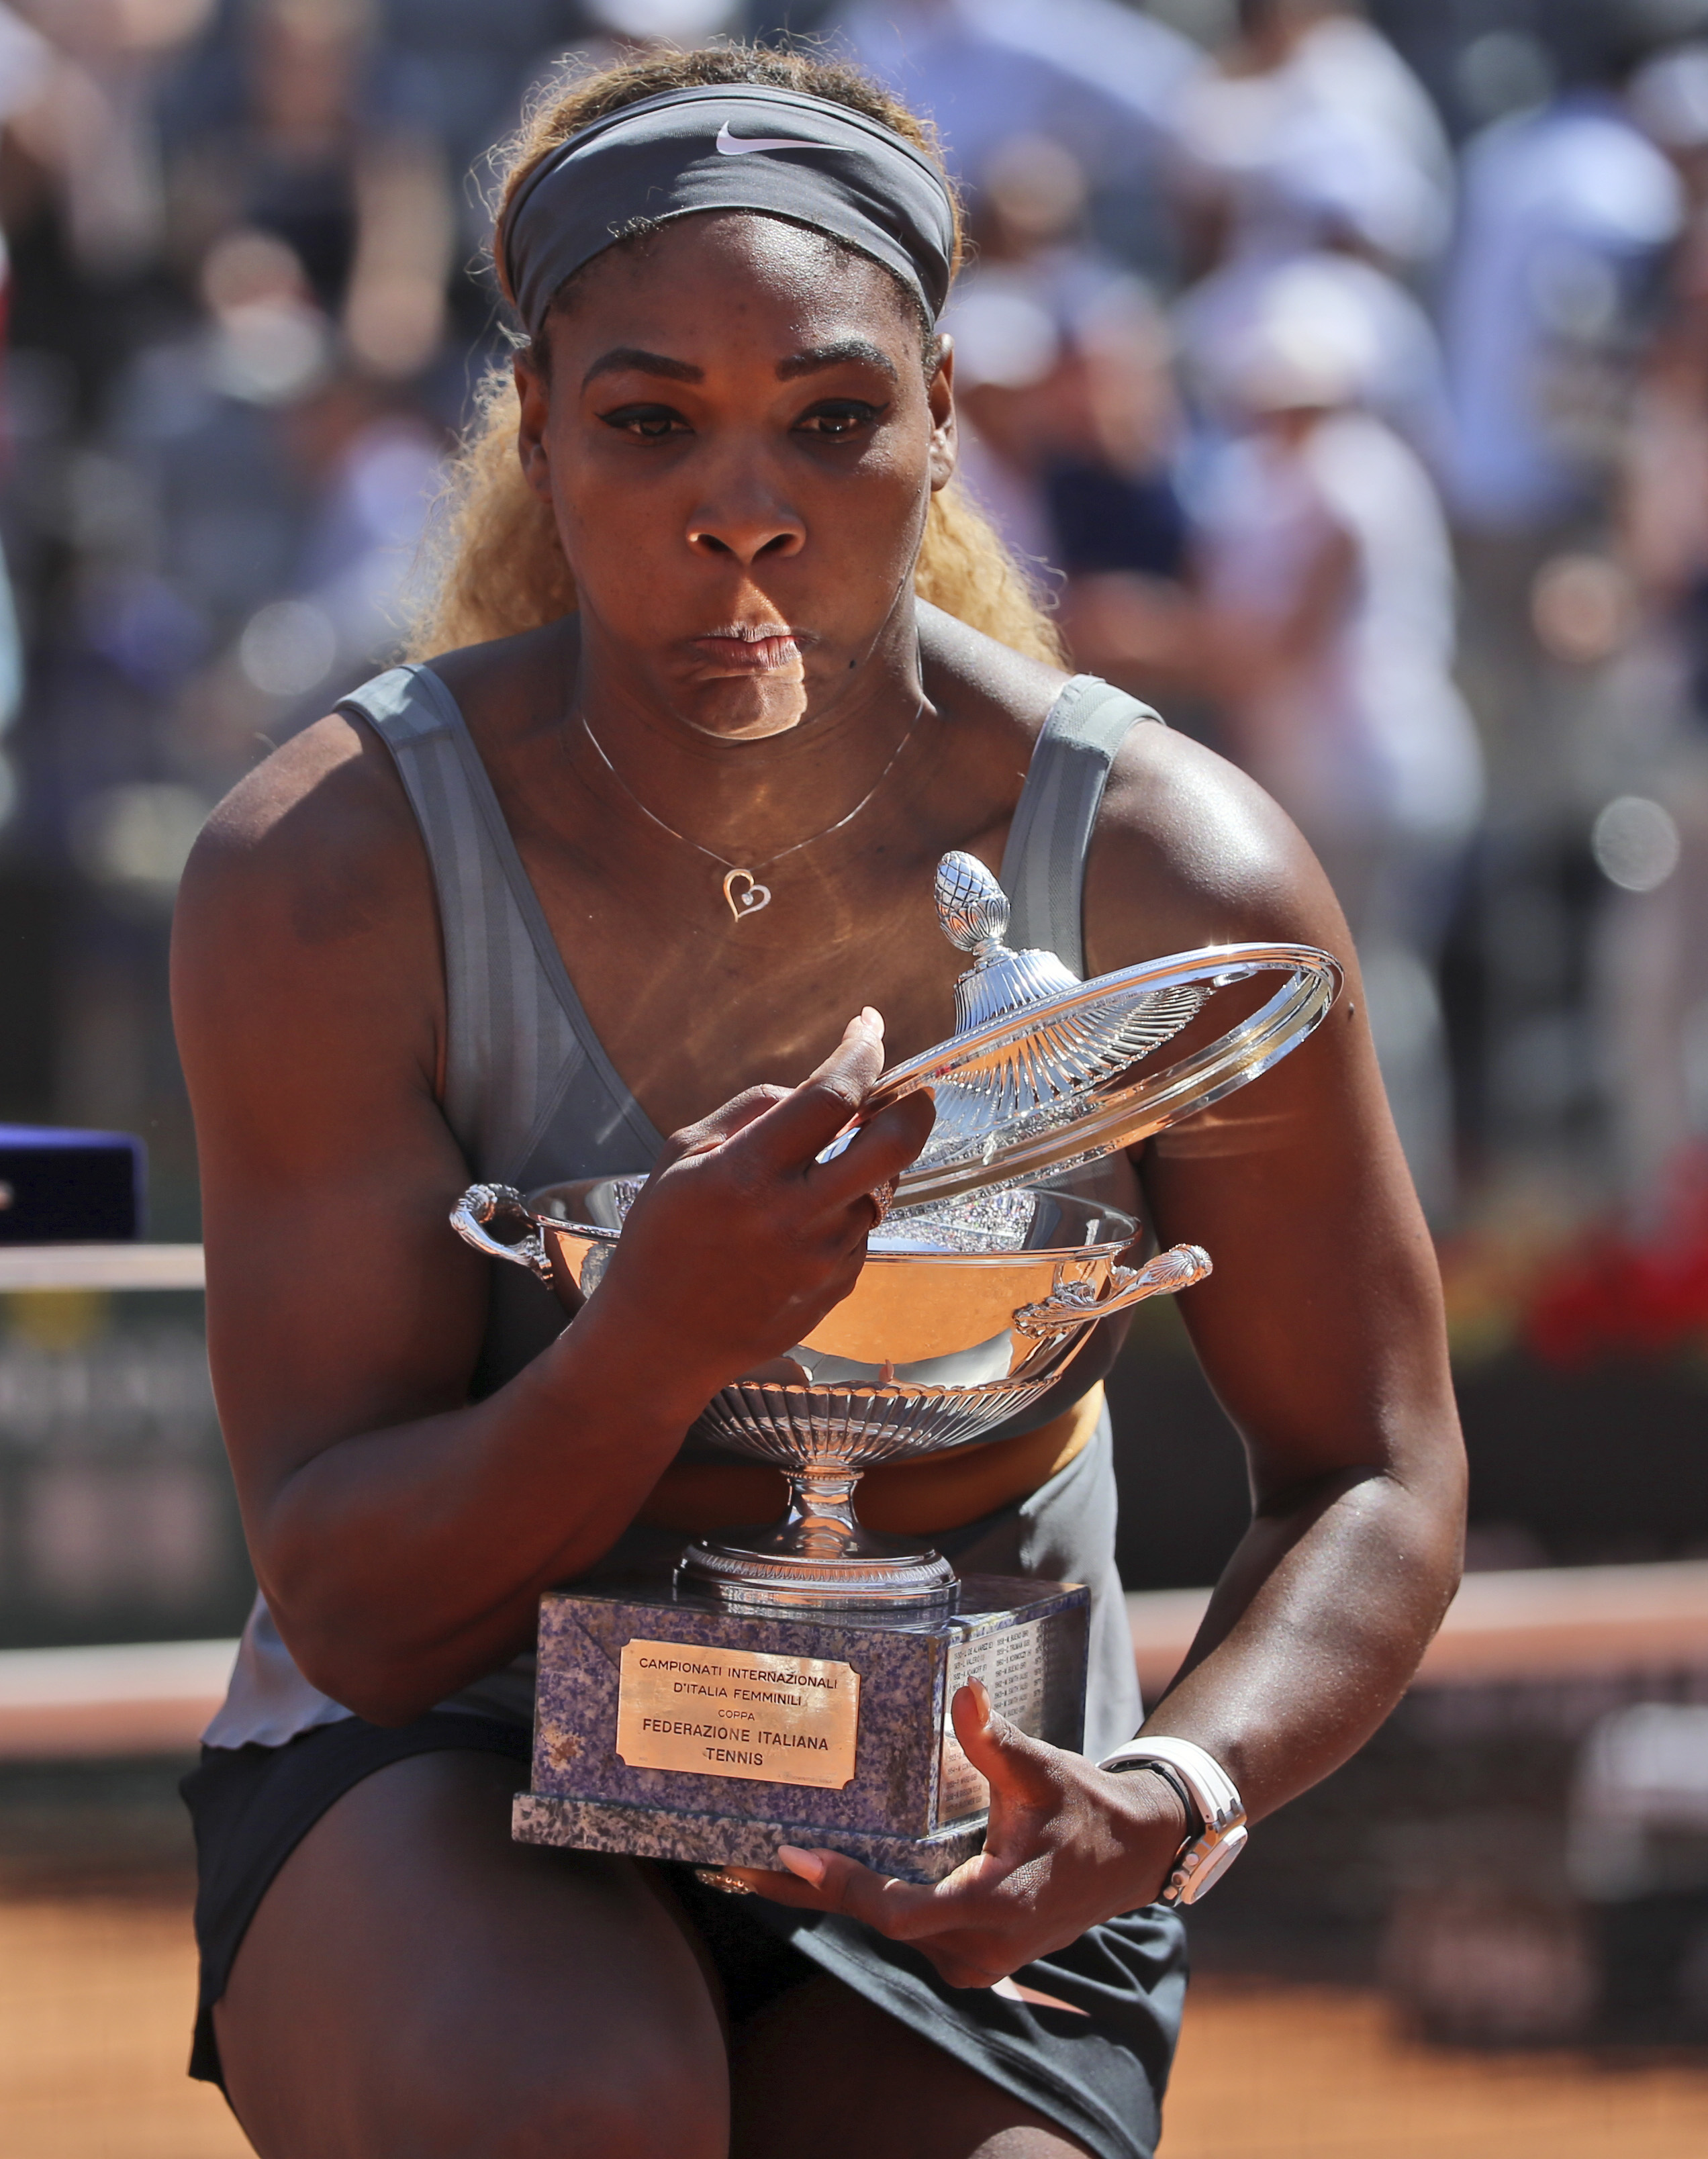 Serena fumbles with her trophy at the Italian Open.